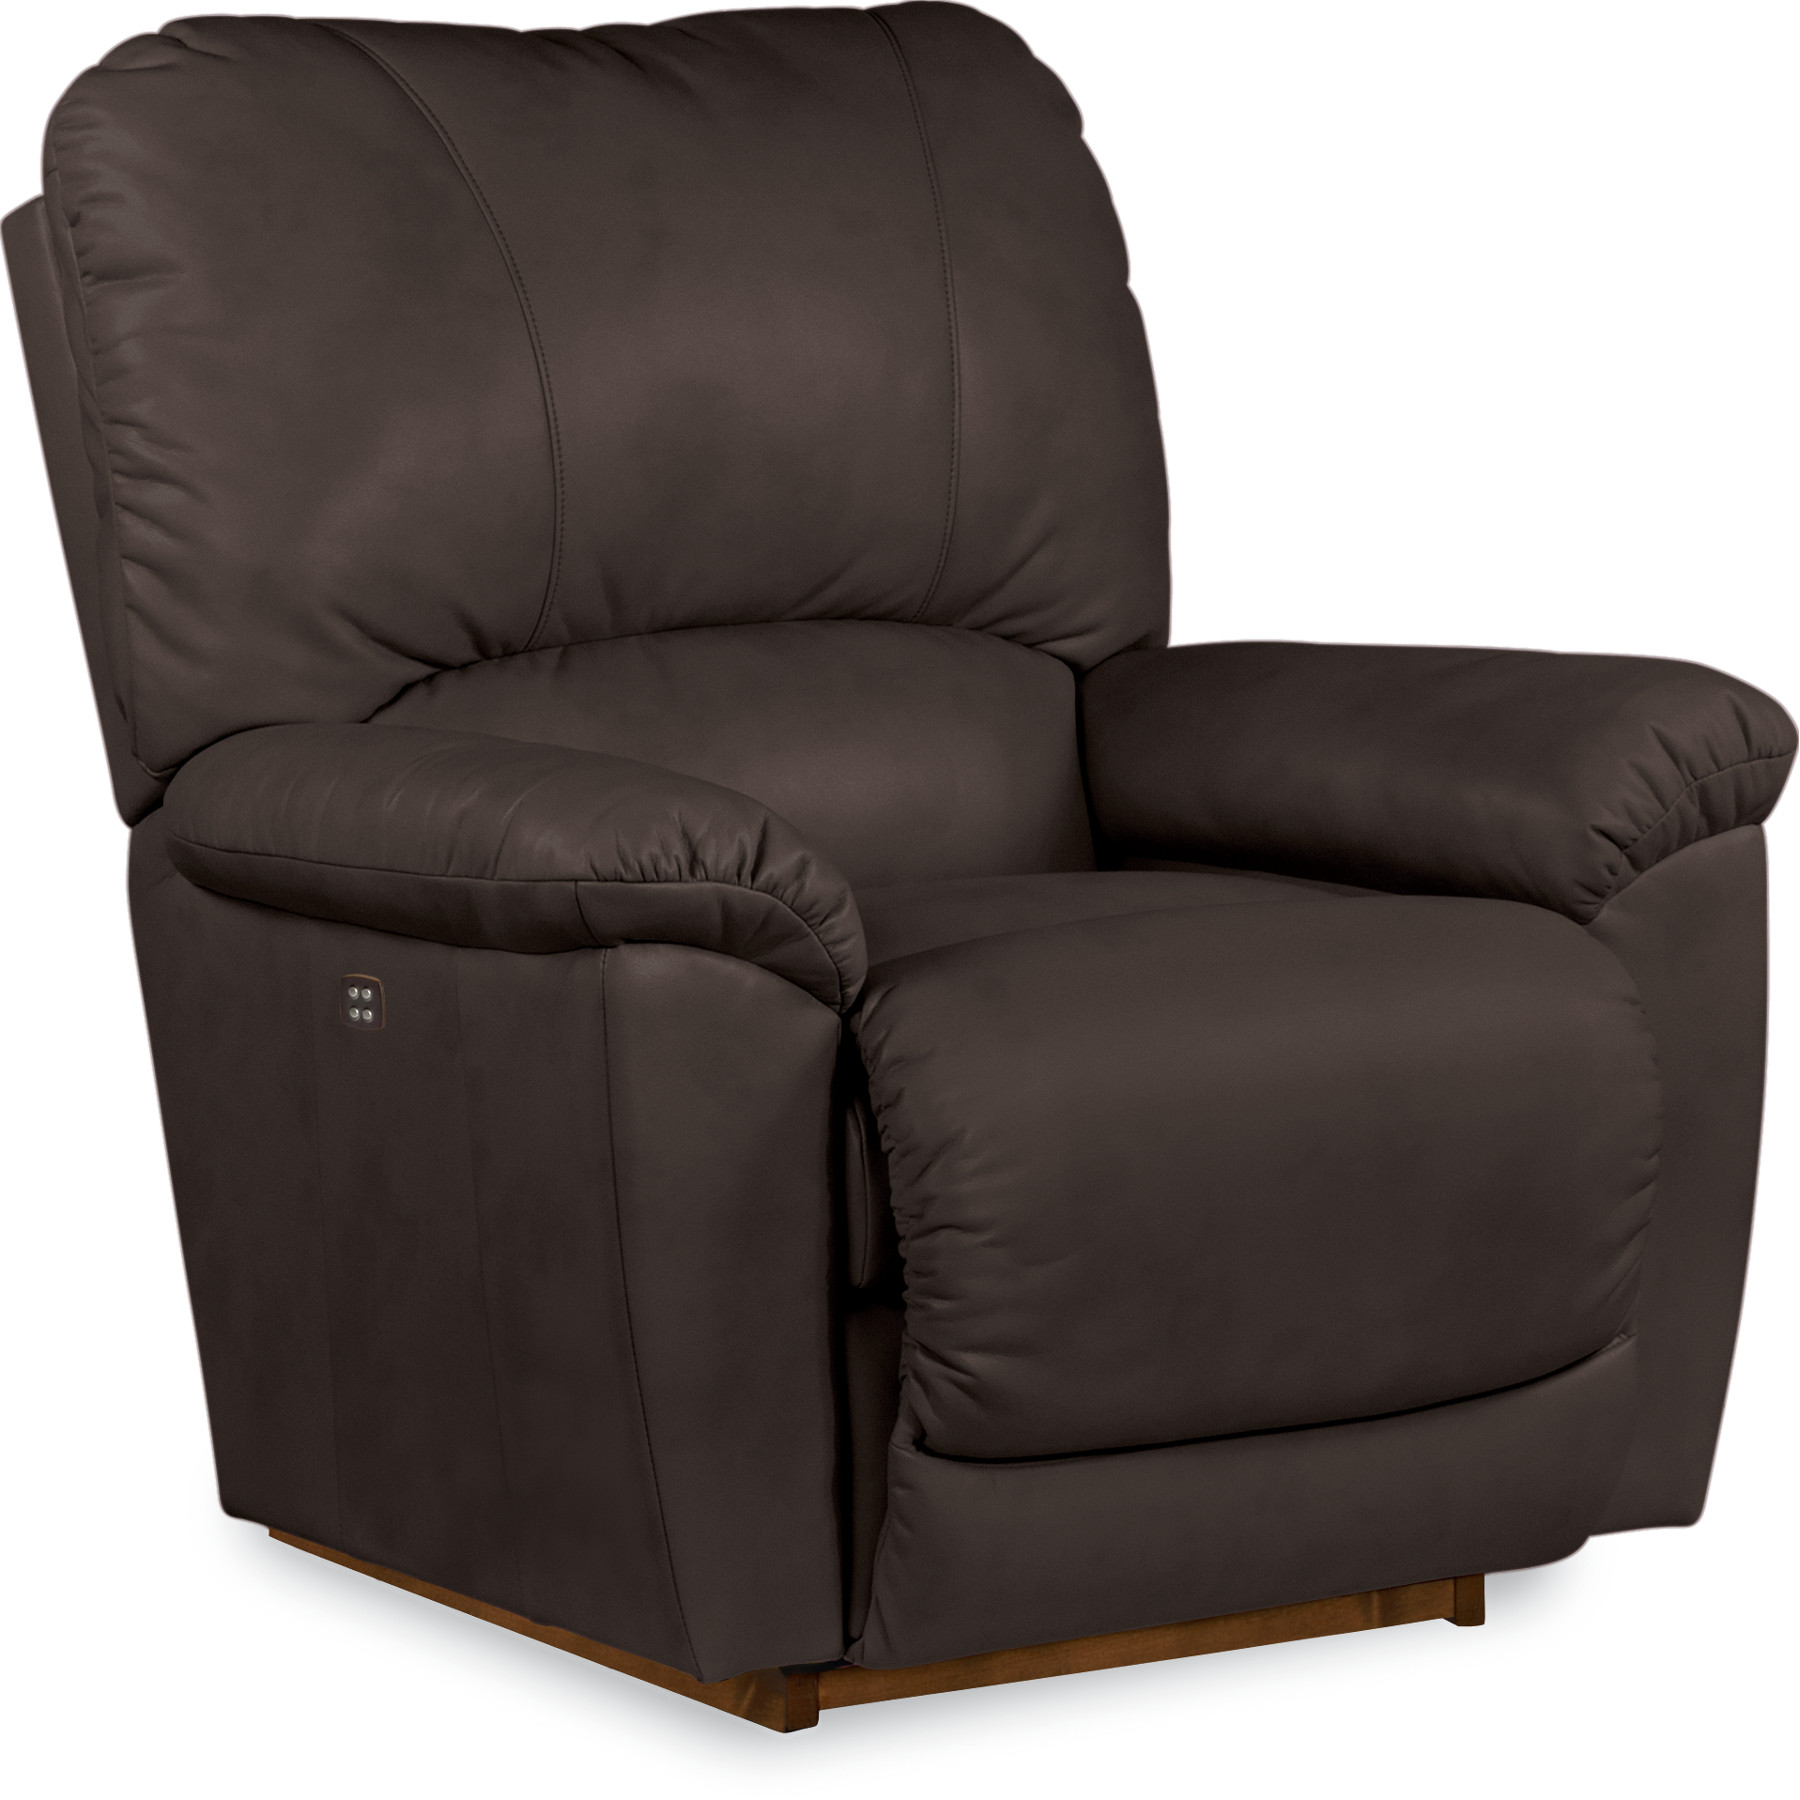 Lazy Boy Swivel Chair La Z Boy Tyler Powerreclinexr Rocker Recliner Mahogany